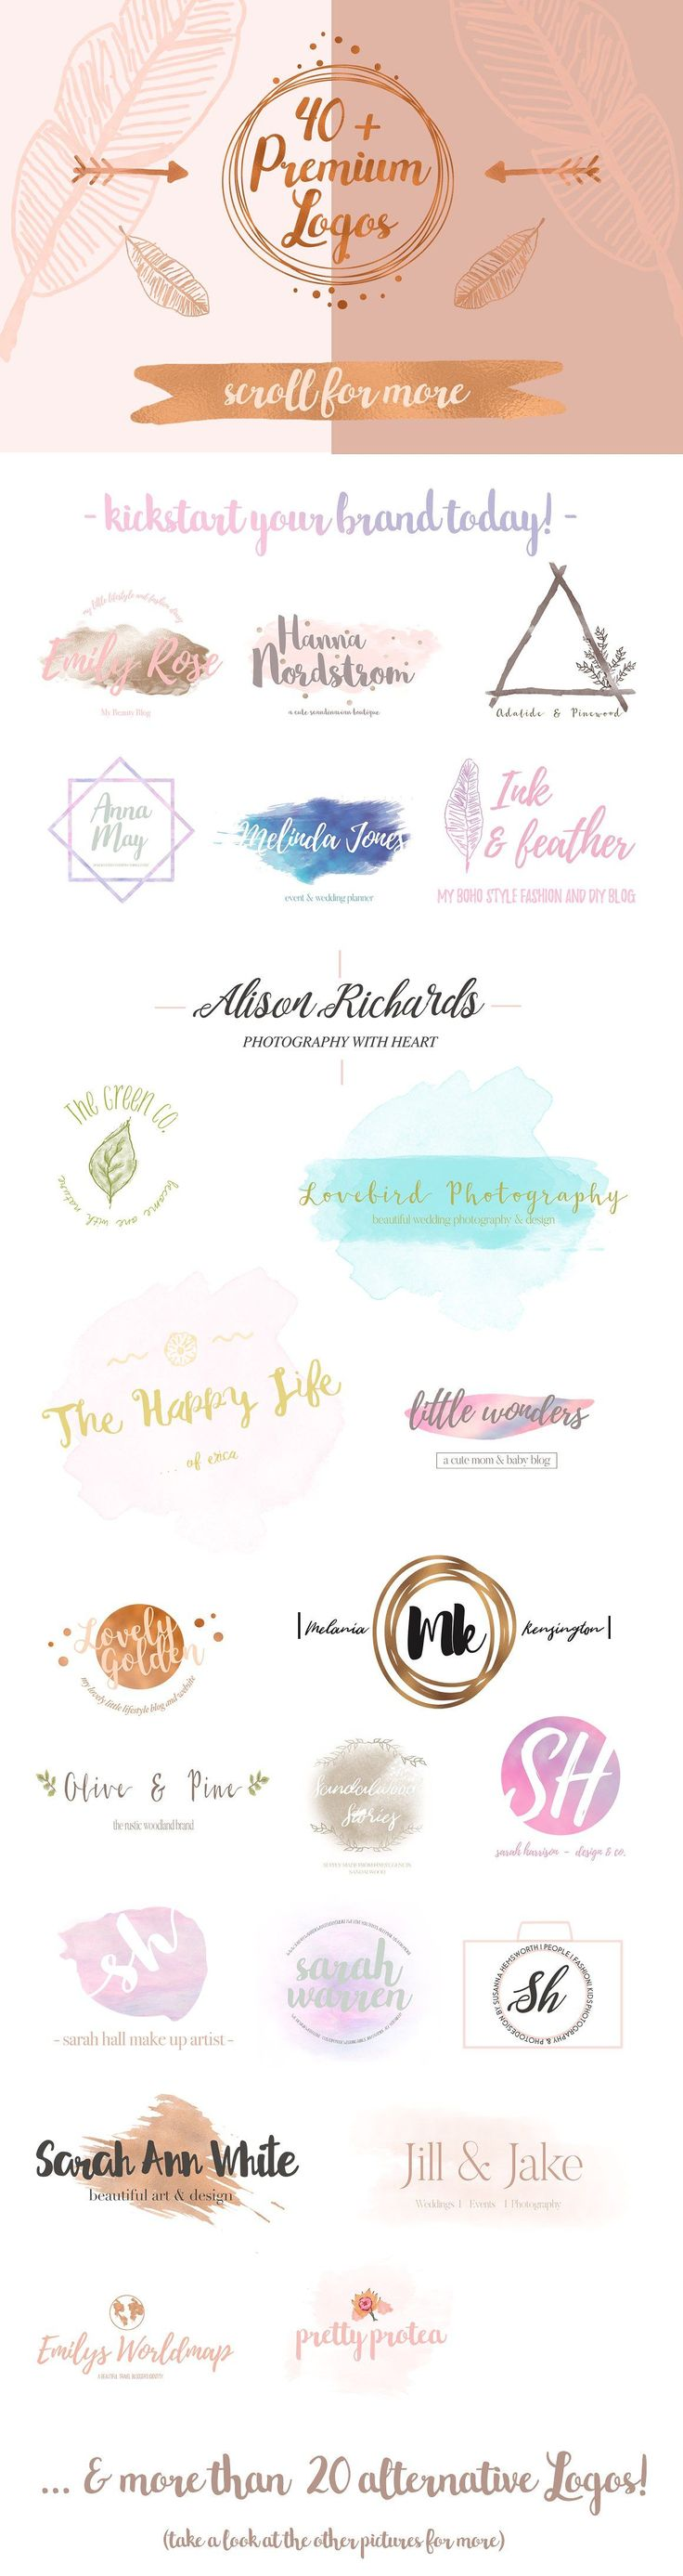 Pretty Premade Branding & Logo Kit by Laras Wonderland on @creativemarket